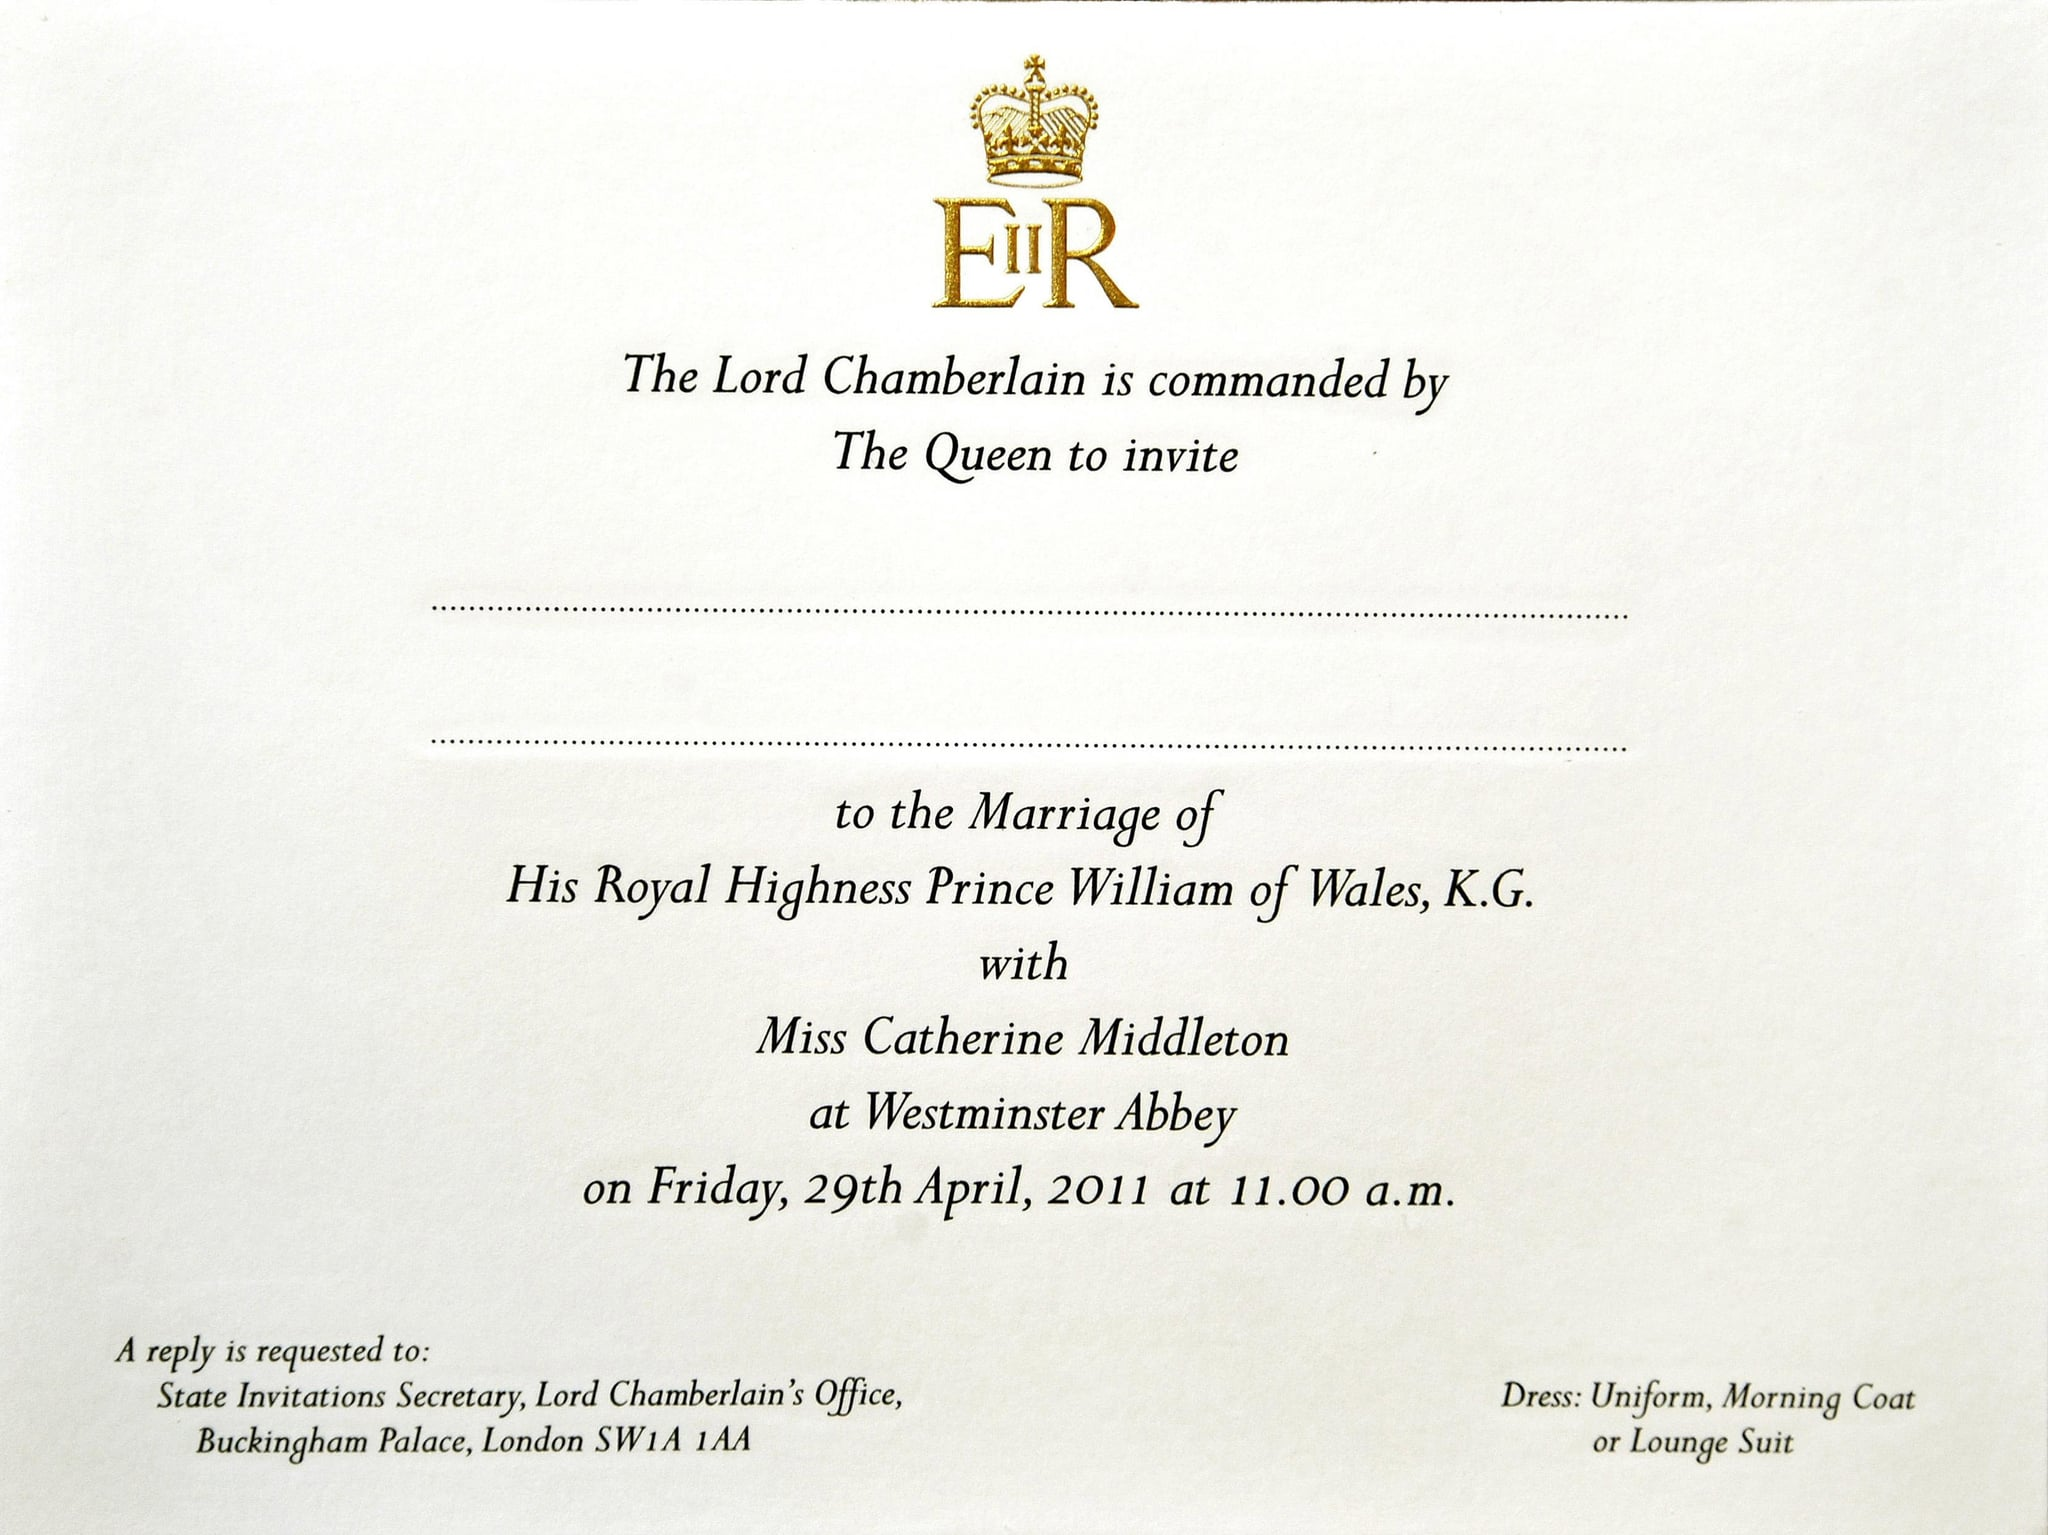 LONDON - FEBRUARY 16: Prince William and Kate Middleton's wedding  invitation as they are prepared for postage at Buckingham Palace, on February 16, 2011 in London, England. The wedding will take place on April 29, at Westminster Abbey.  (Photo by John Stillwell - WPA Poo//Getty Images)